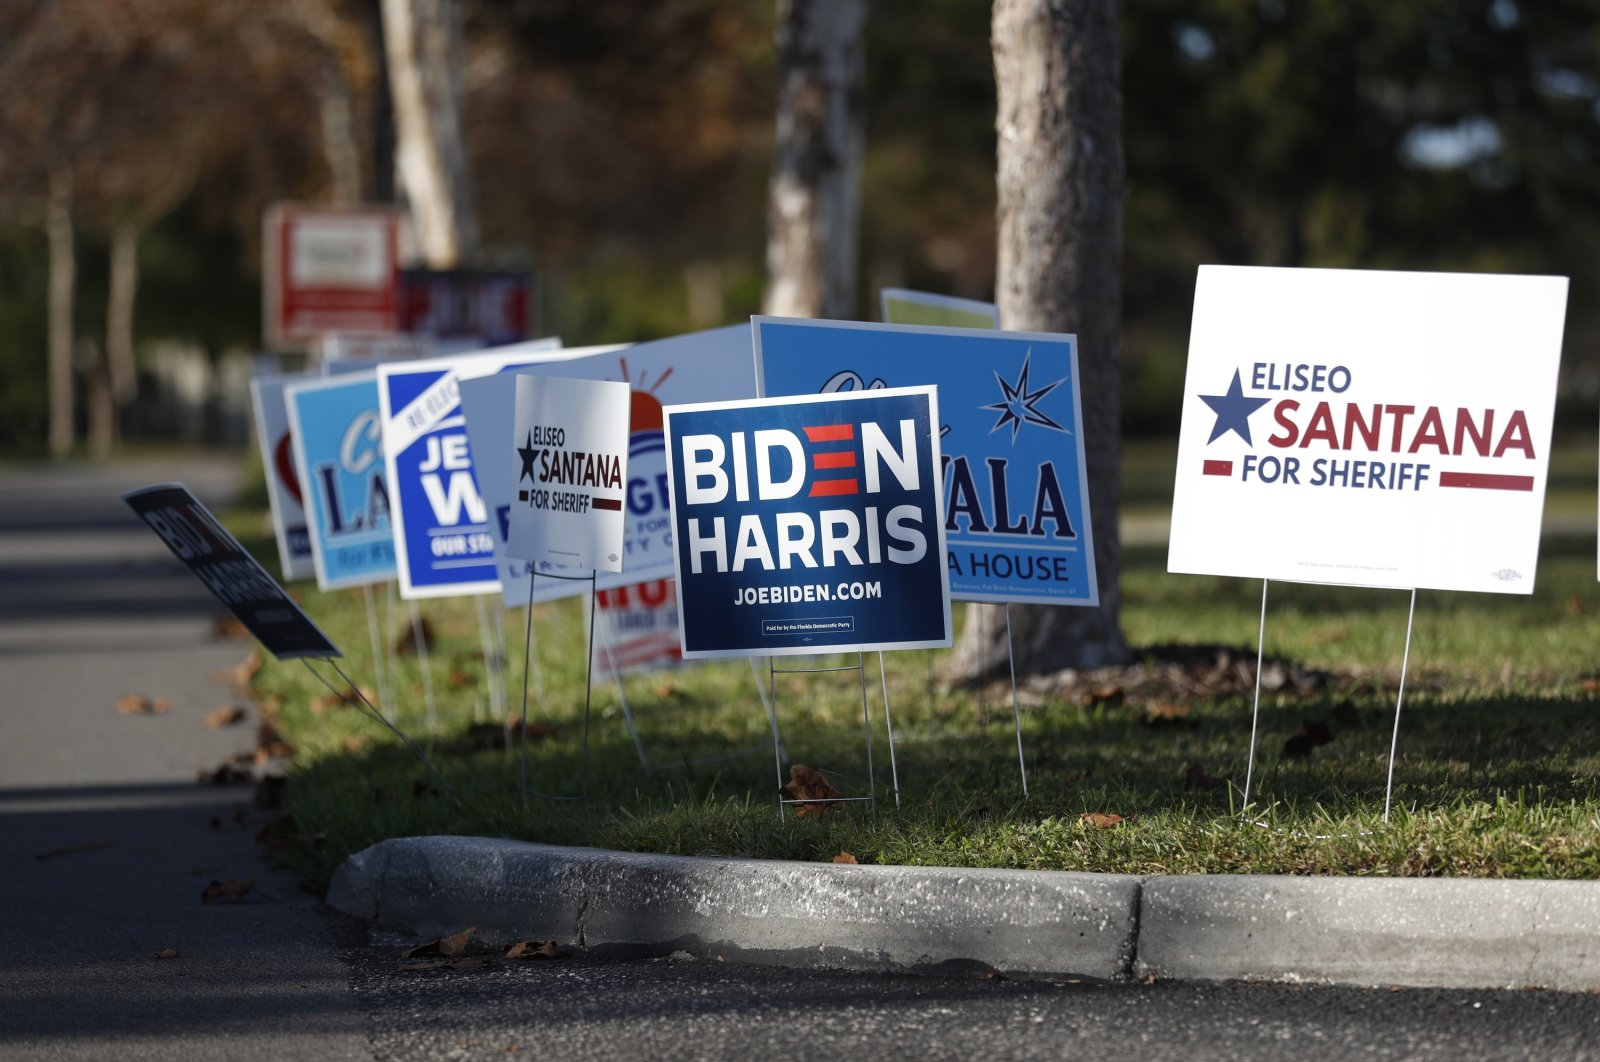 Campaign signs for Democratic presidential and vice presidential nominees Joe Biden and Kamala Harris are displayed near the Pinellas County Supervisor of Elections office polling station in Largo, Florida, Oct. 25, 2020. (AFP Photo)